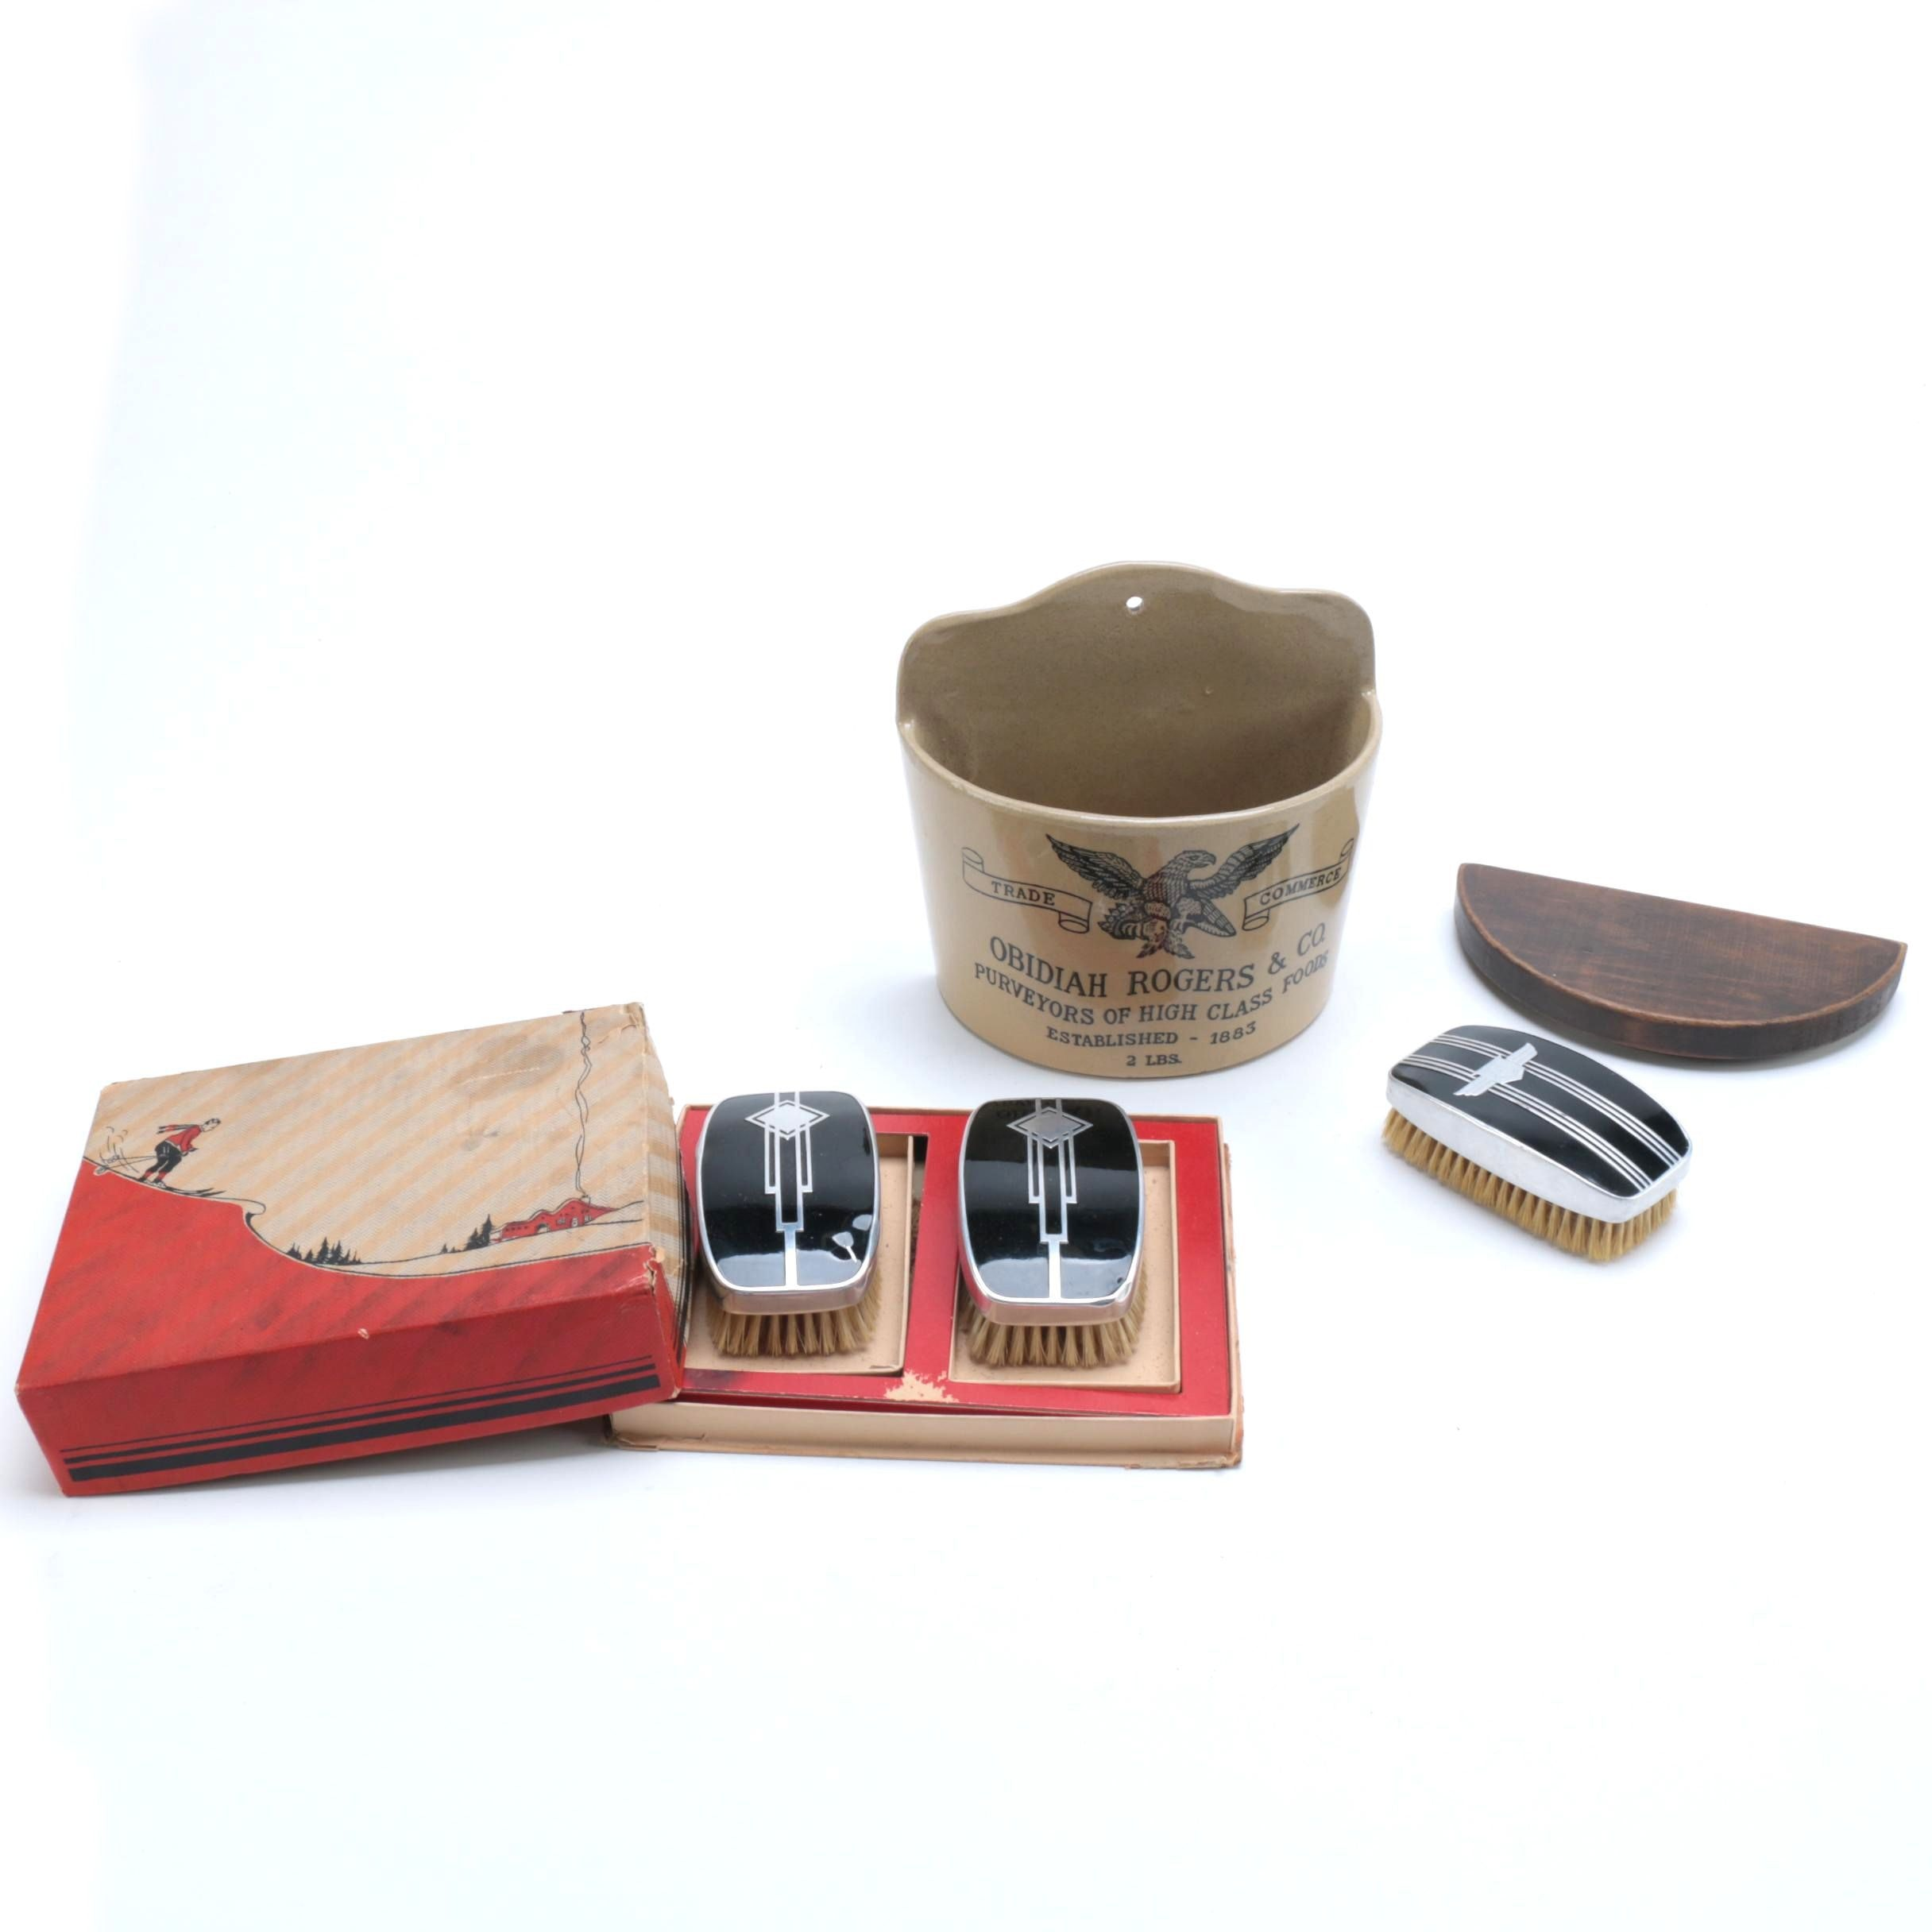 Obidiah Rodgers & Co. Wall Pocket and a Set of Vintage Men's Brushes